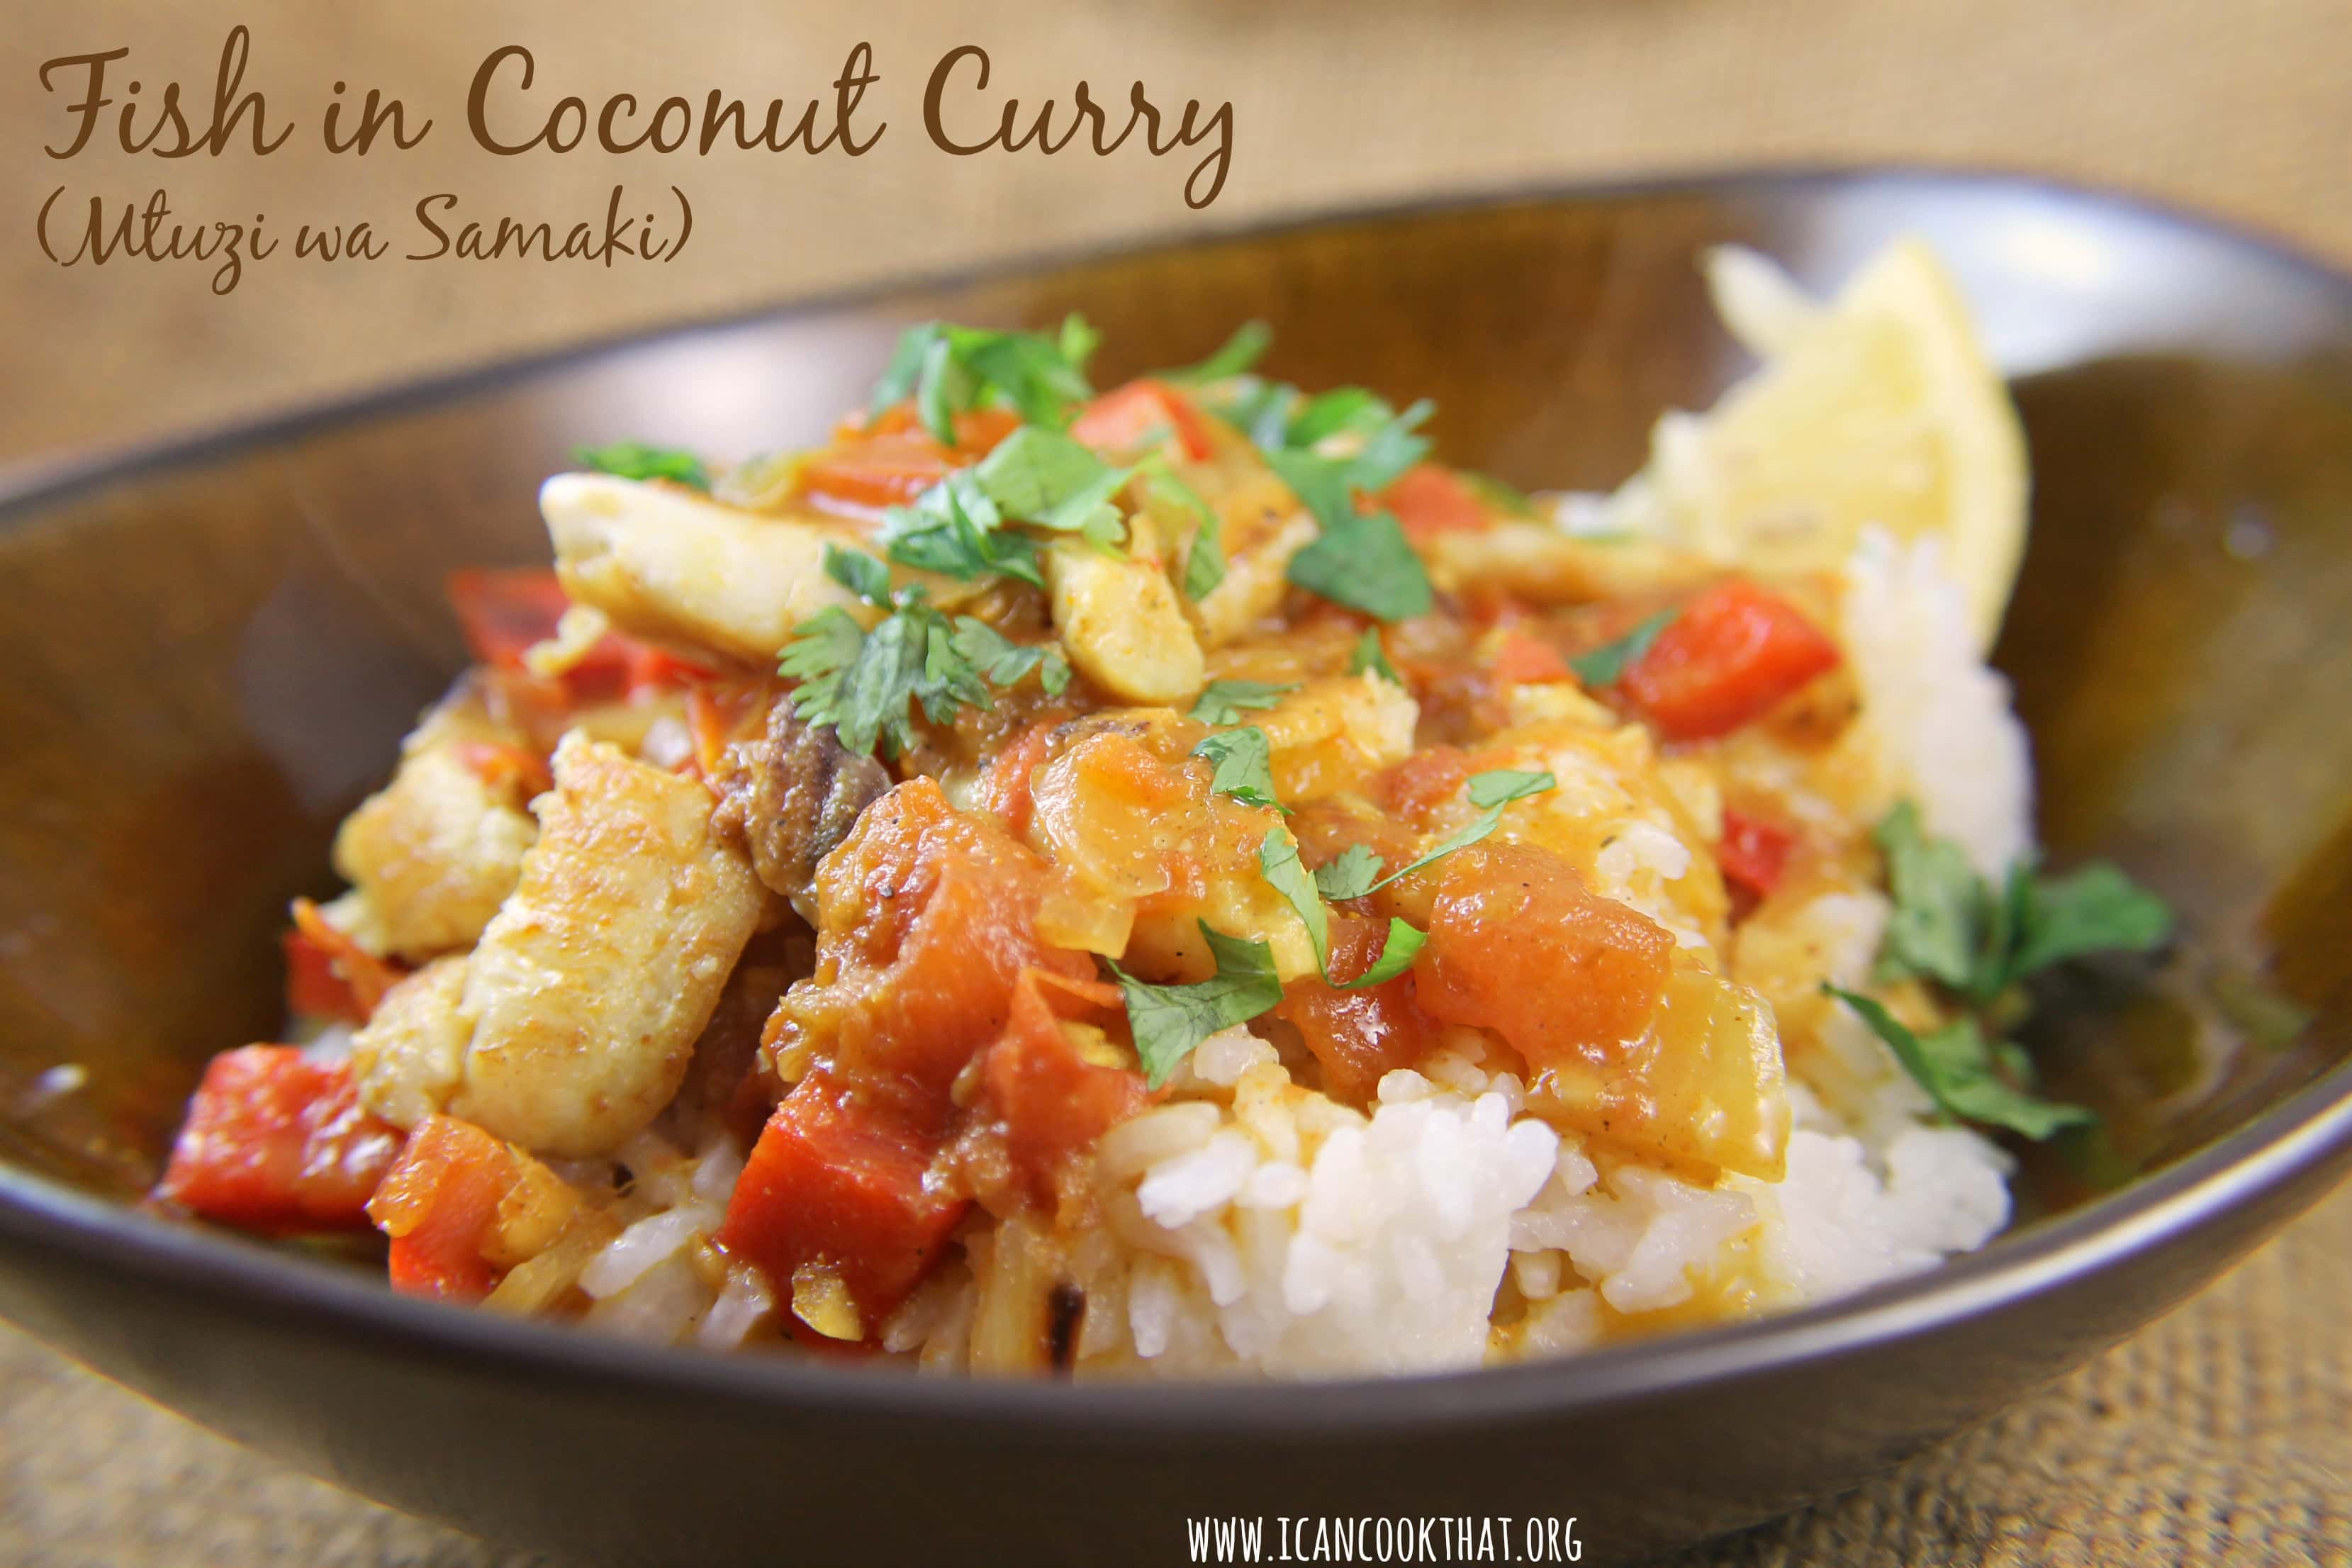 Fish in Coconut Curry (Mtuzi wa Samaki)